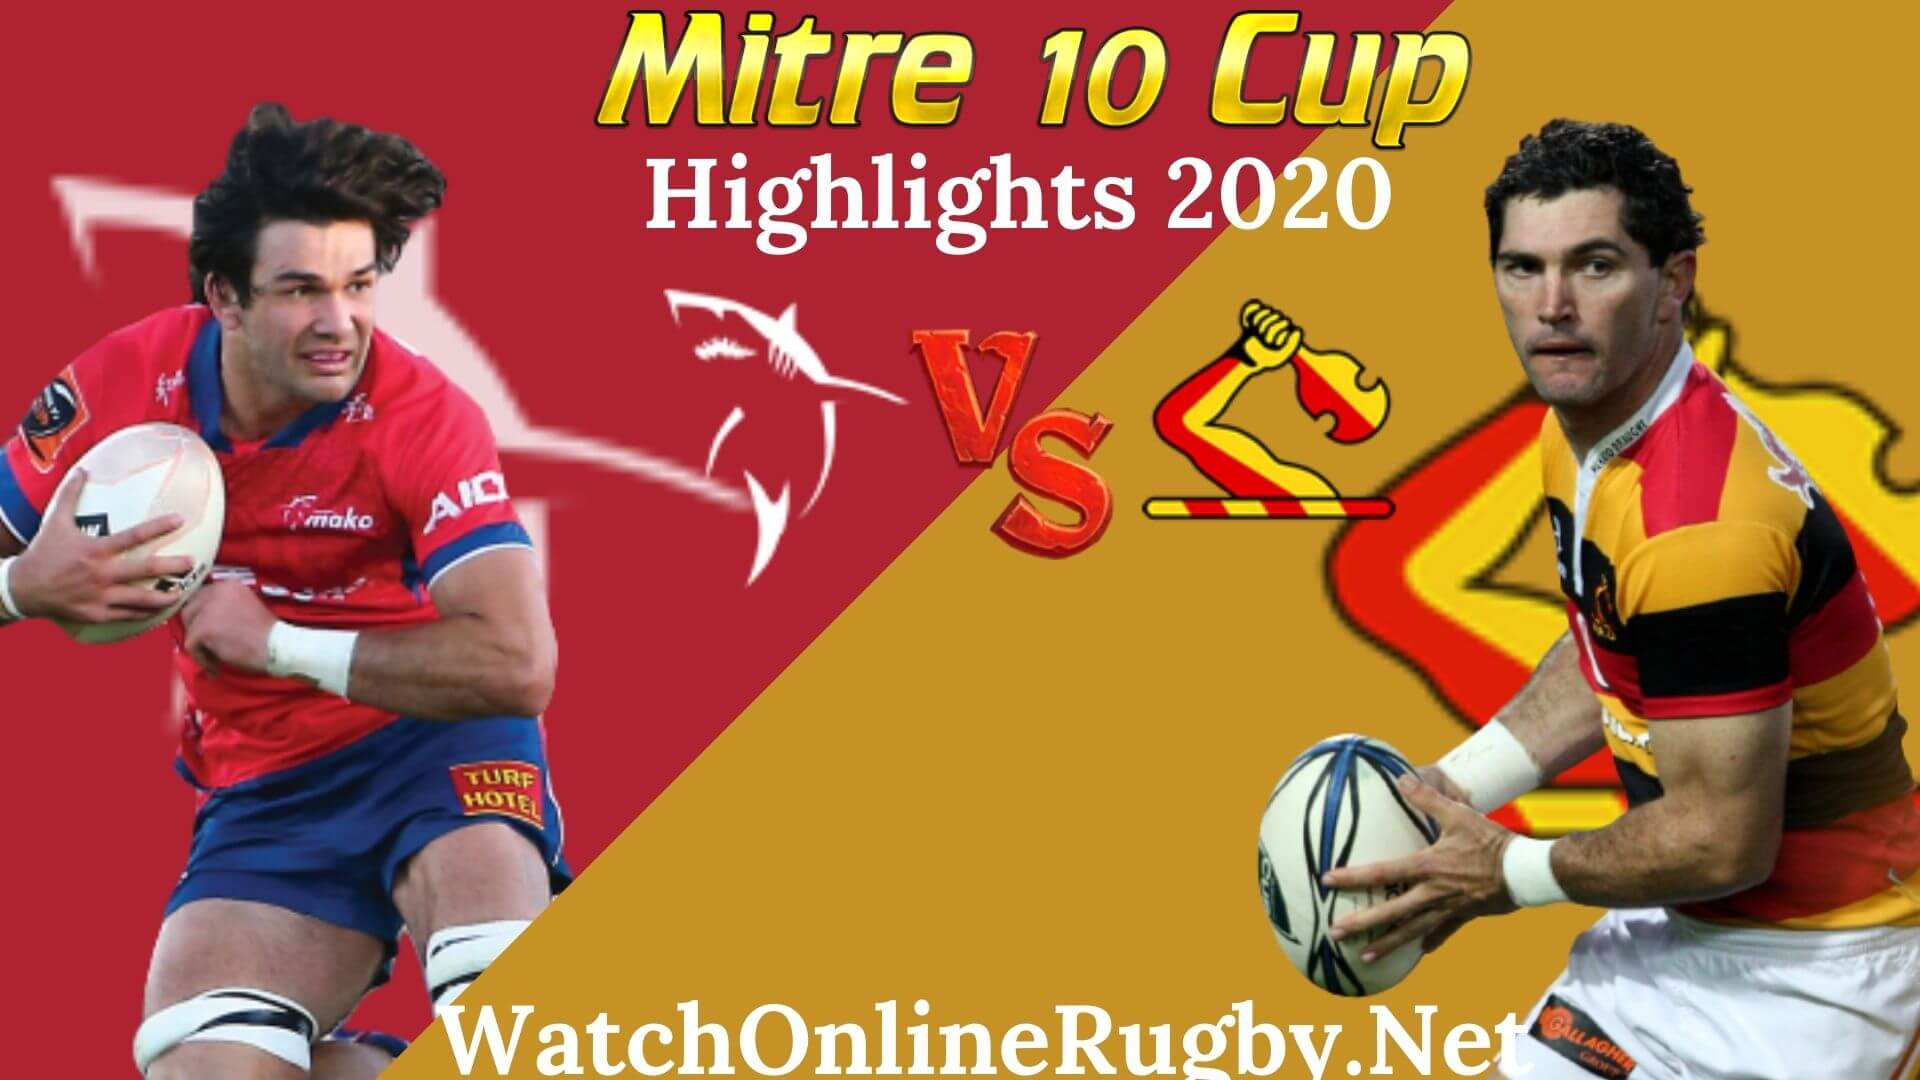 Tasman vs Waikato RD 3 Highlights 2020 M10 Cup